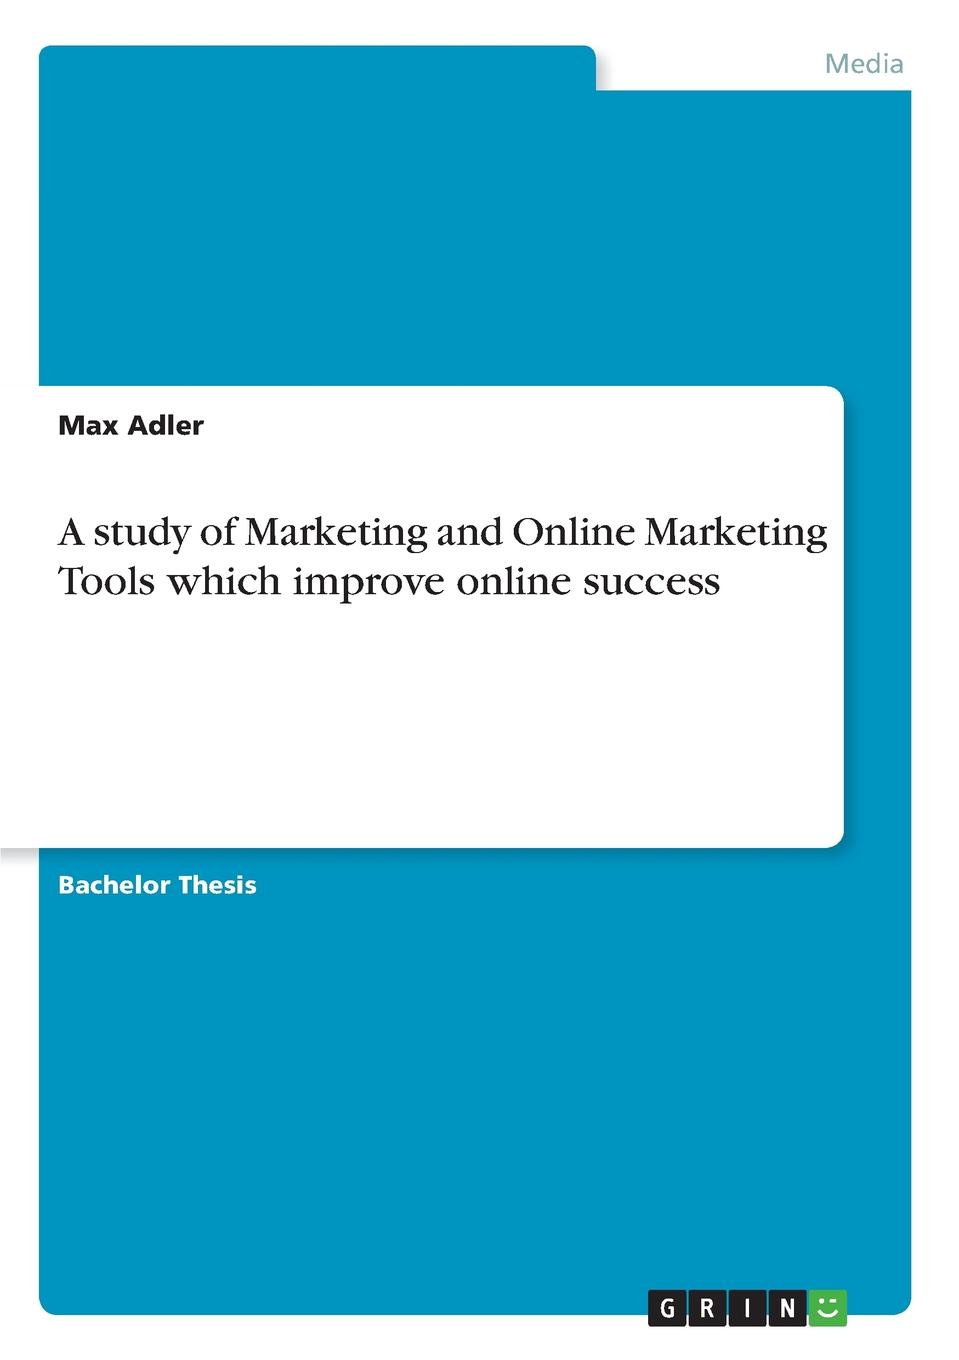 Max Adler A study of Marketing and Online Marketing Tools which improve online success viviane dorp gender commerce past development and new technologies in online marketing to influence customers buying behavior